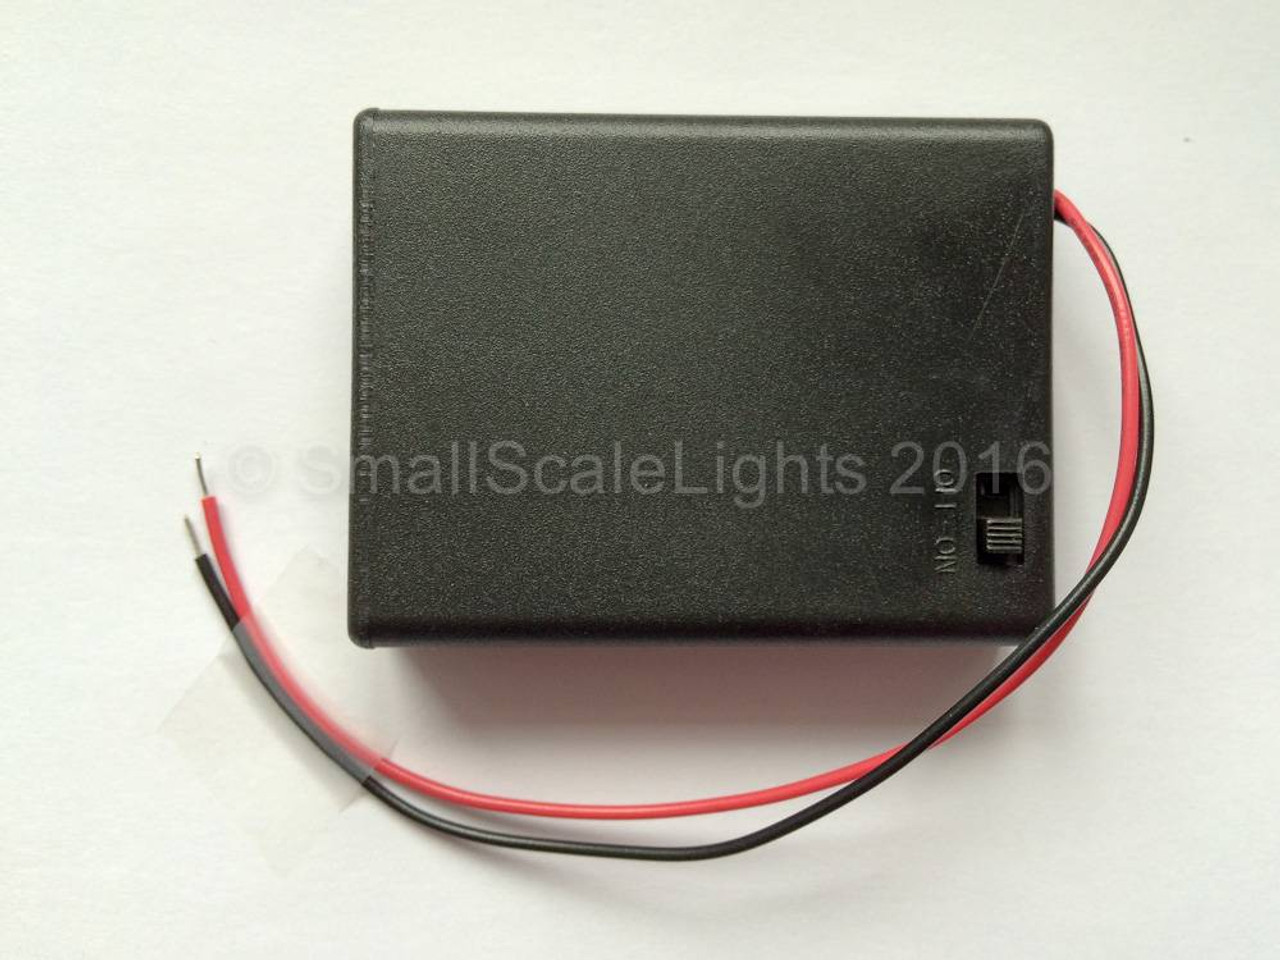 4 x AAA, 6v Battery box with switch & batteries